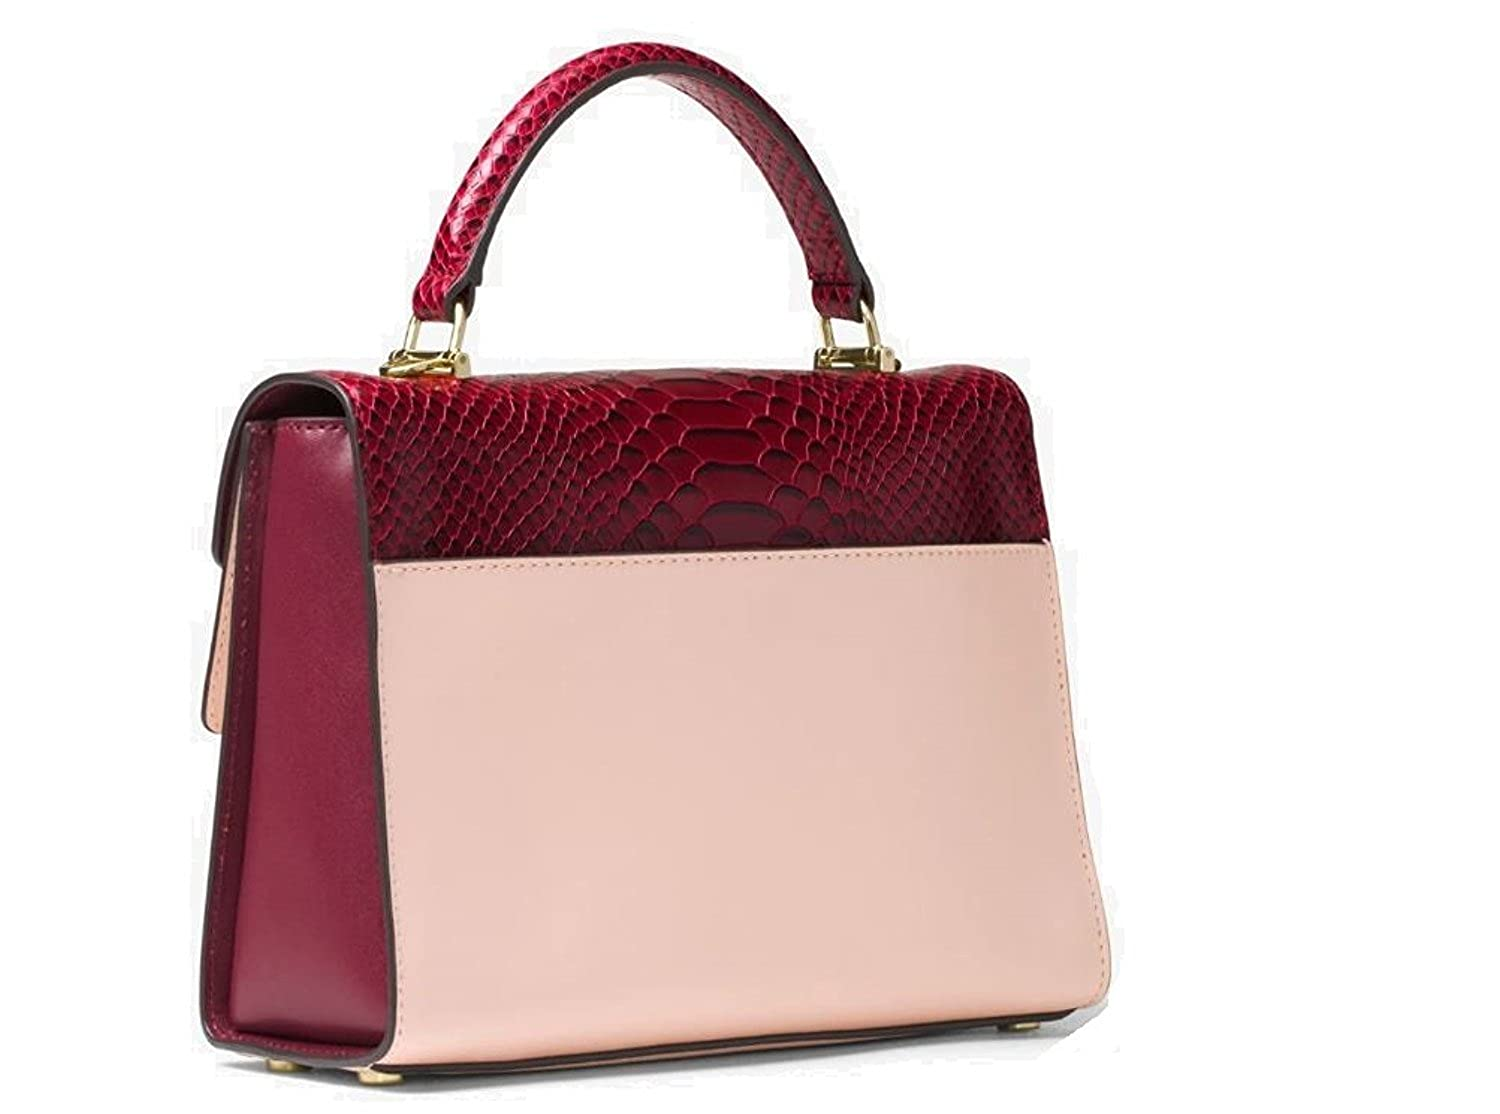 6a76f9724594 Michael Kors Sloan Medium Top Handle Satchel  Handbags  Amazon.com